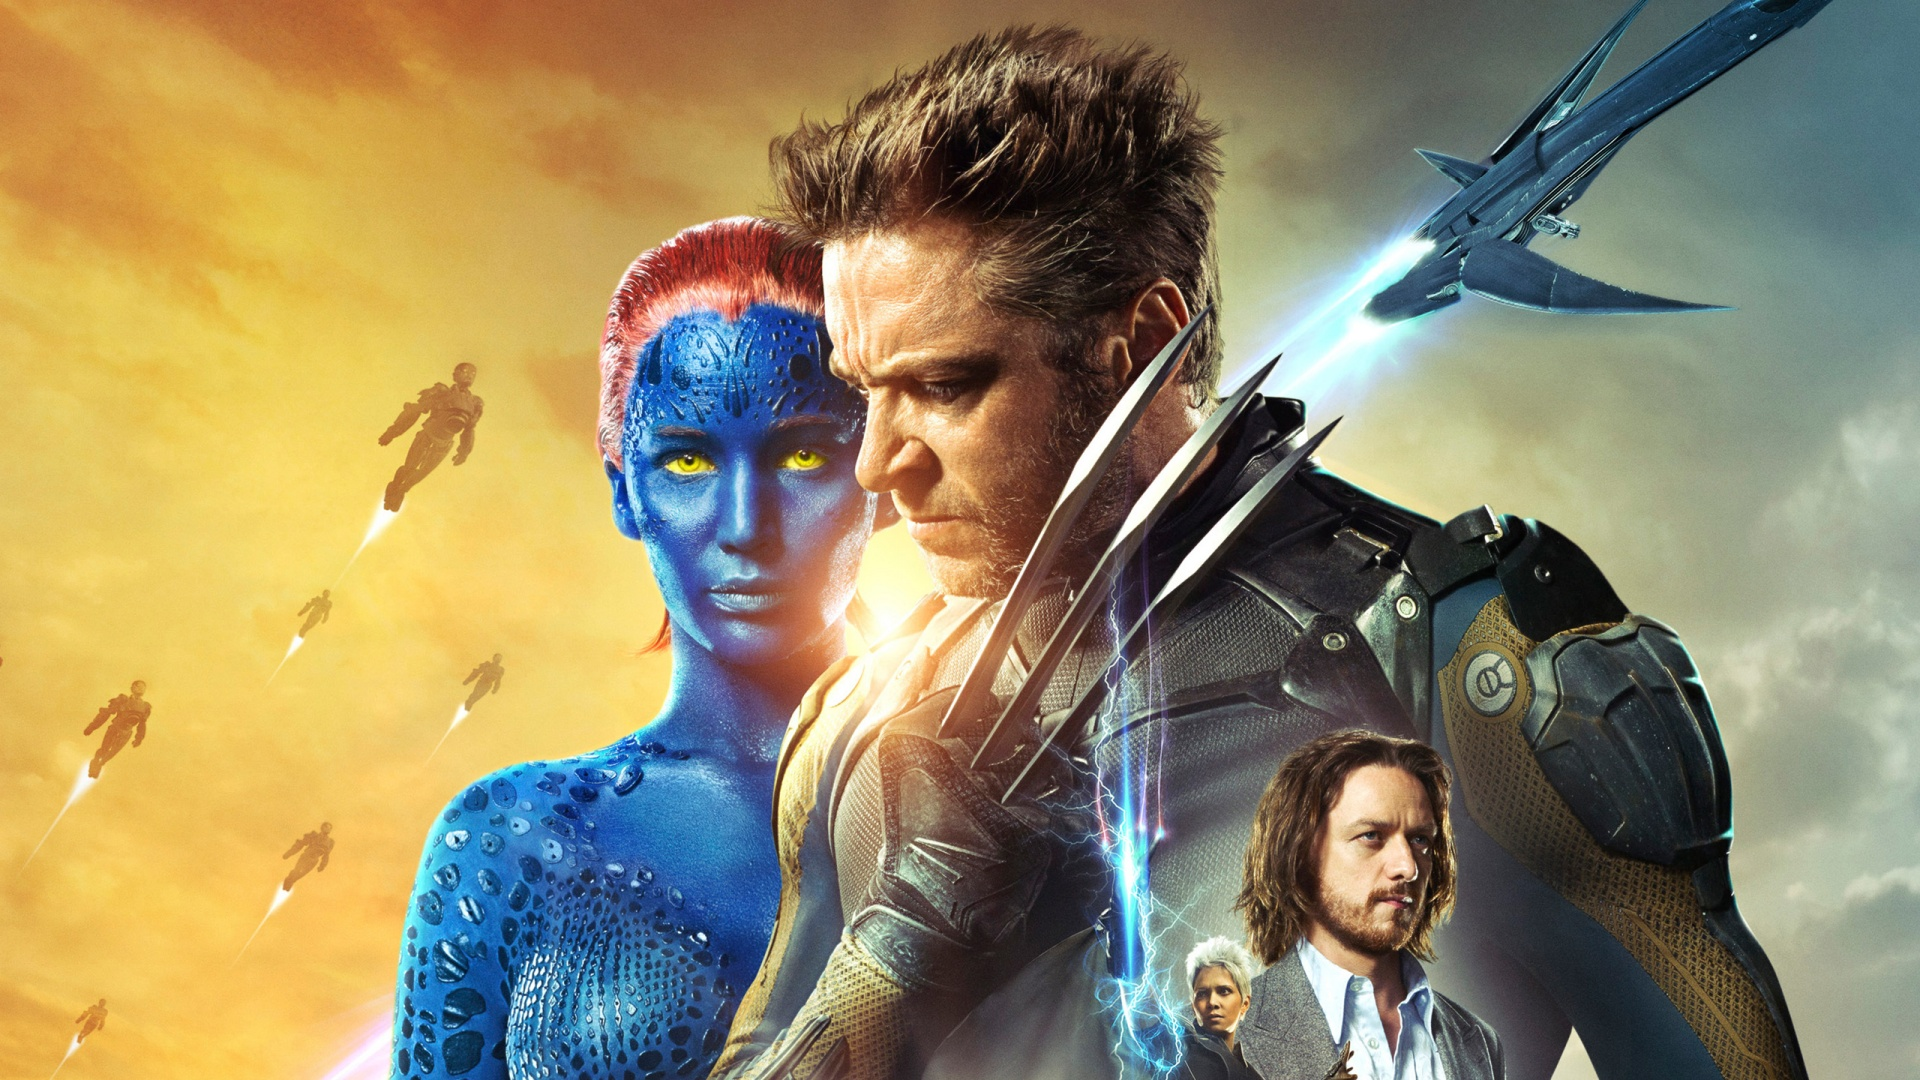 X Men Days Of Future Past Wallpaper: Linking To Thinking